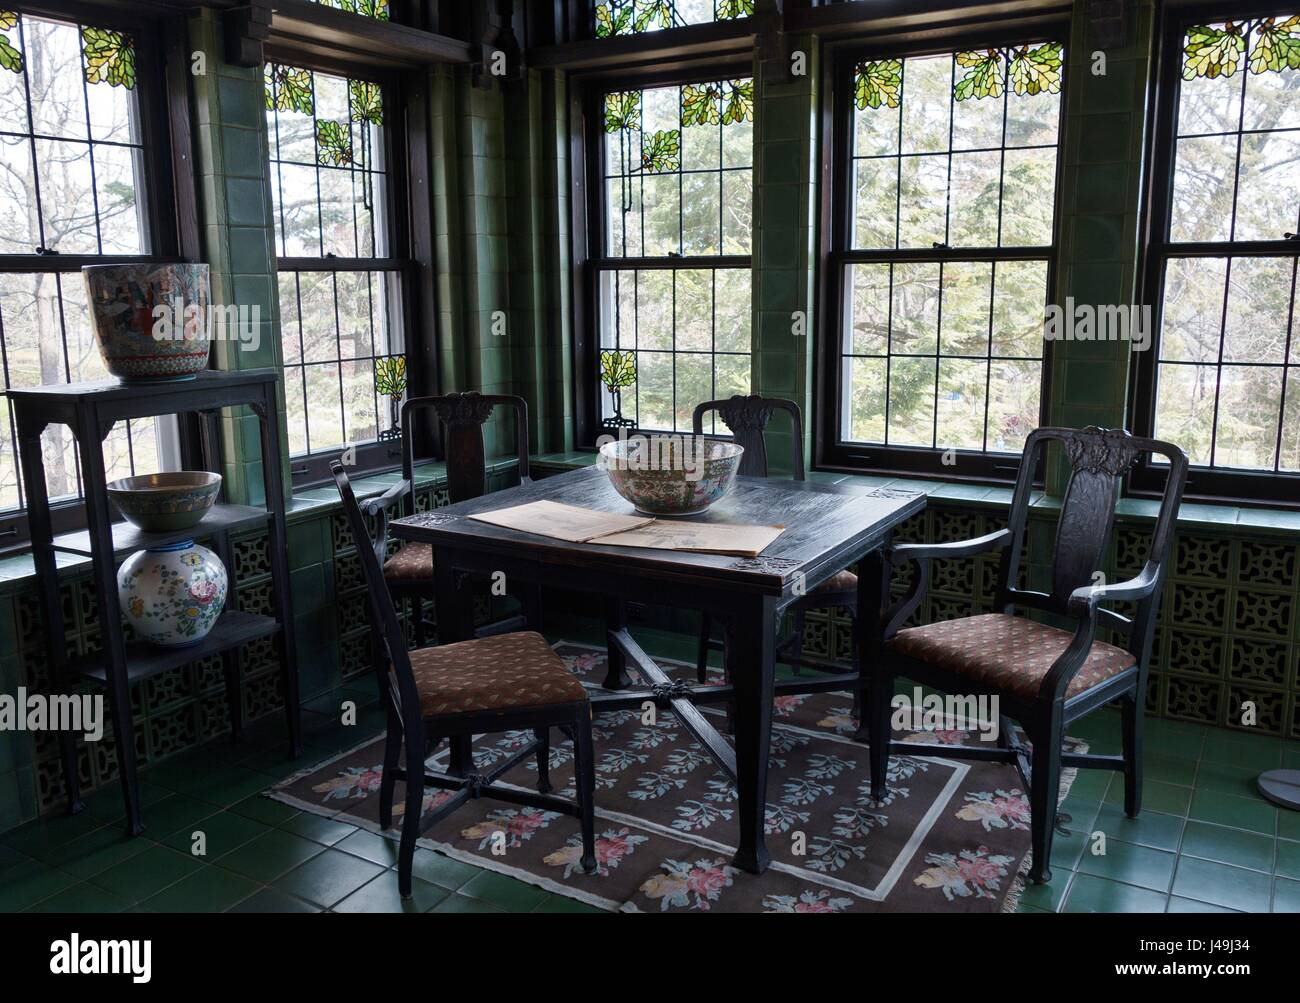 A dining area at Glensheen Mansion in Duluth, Minnesota, USA. - Stock Image